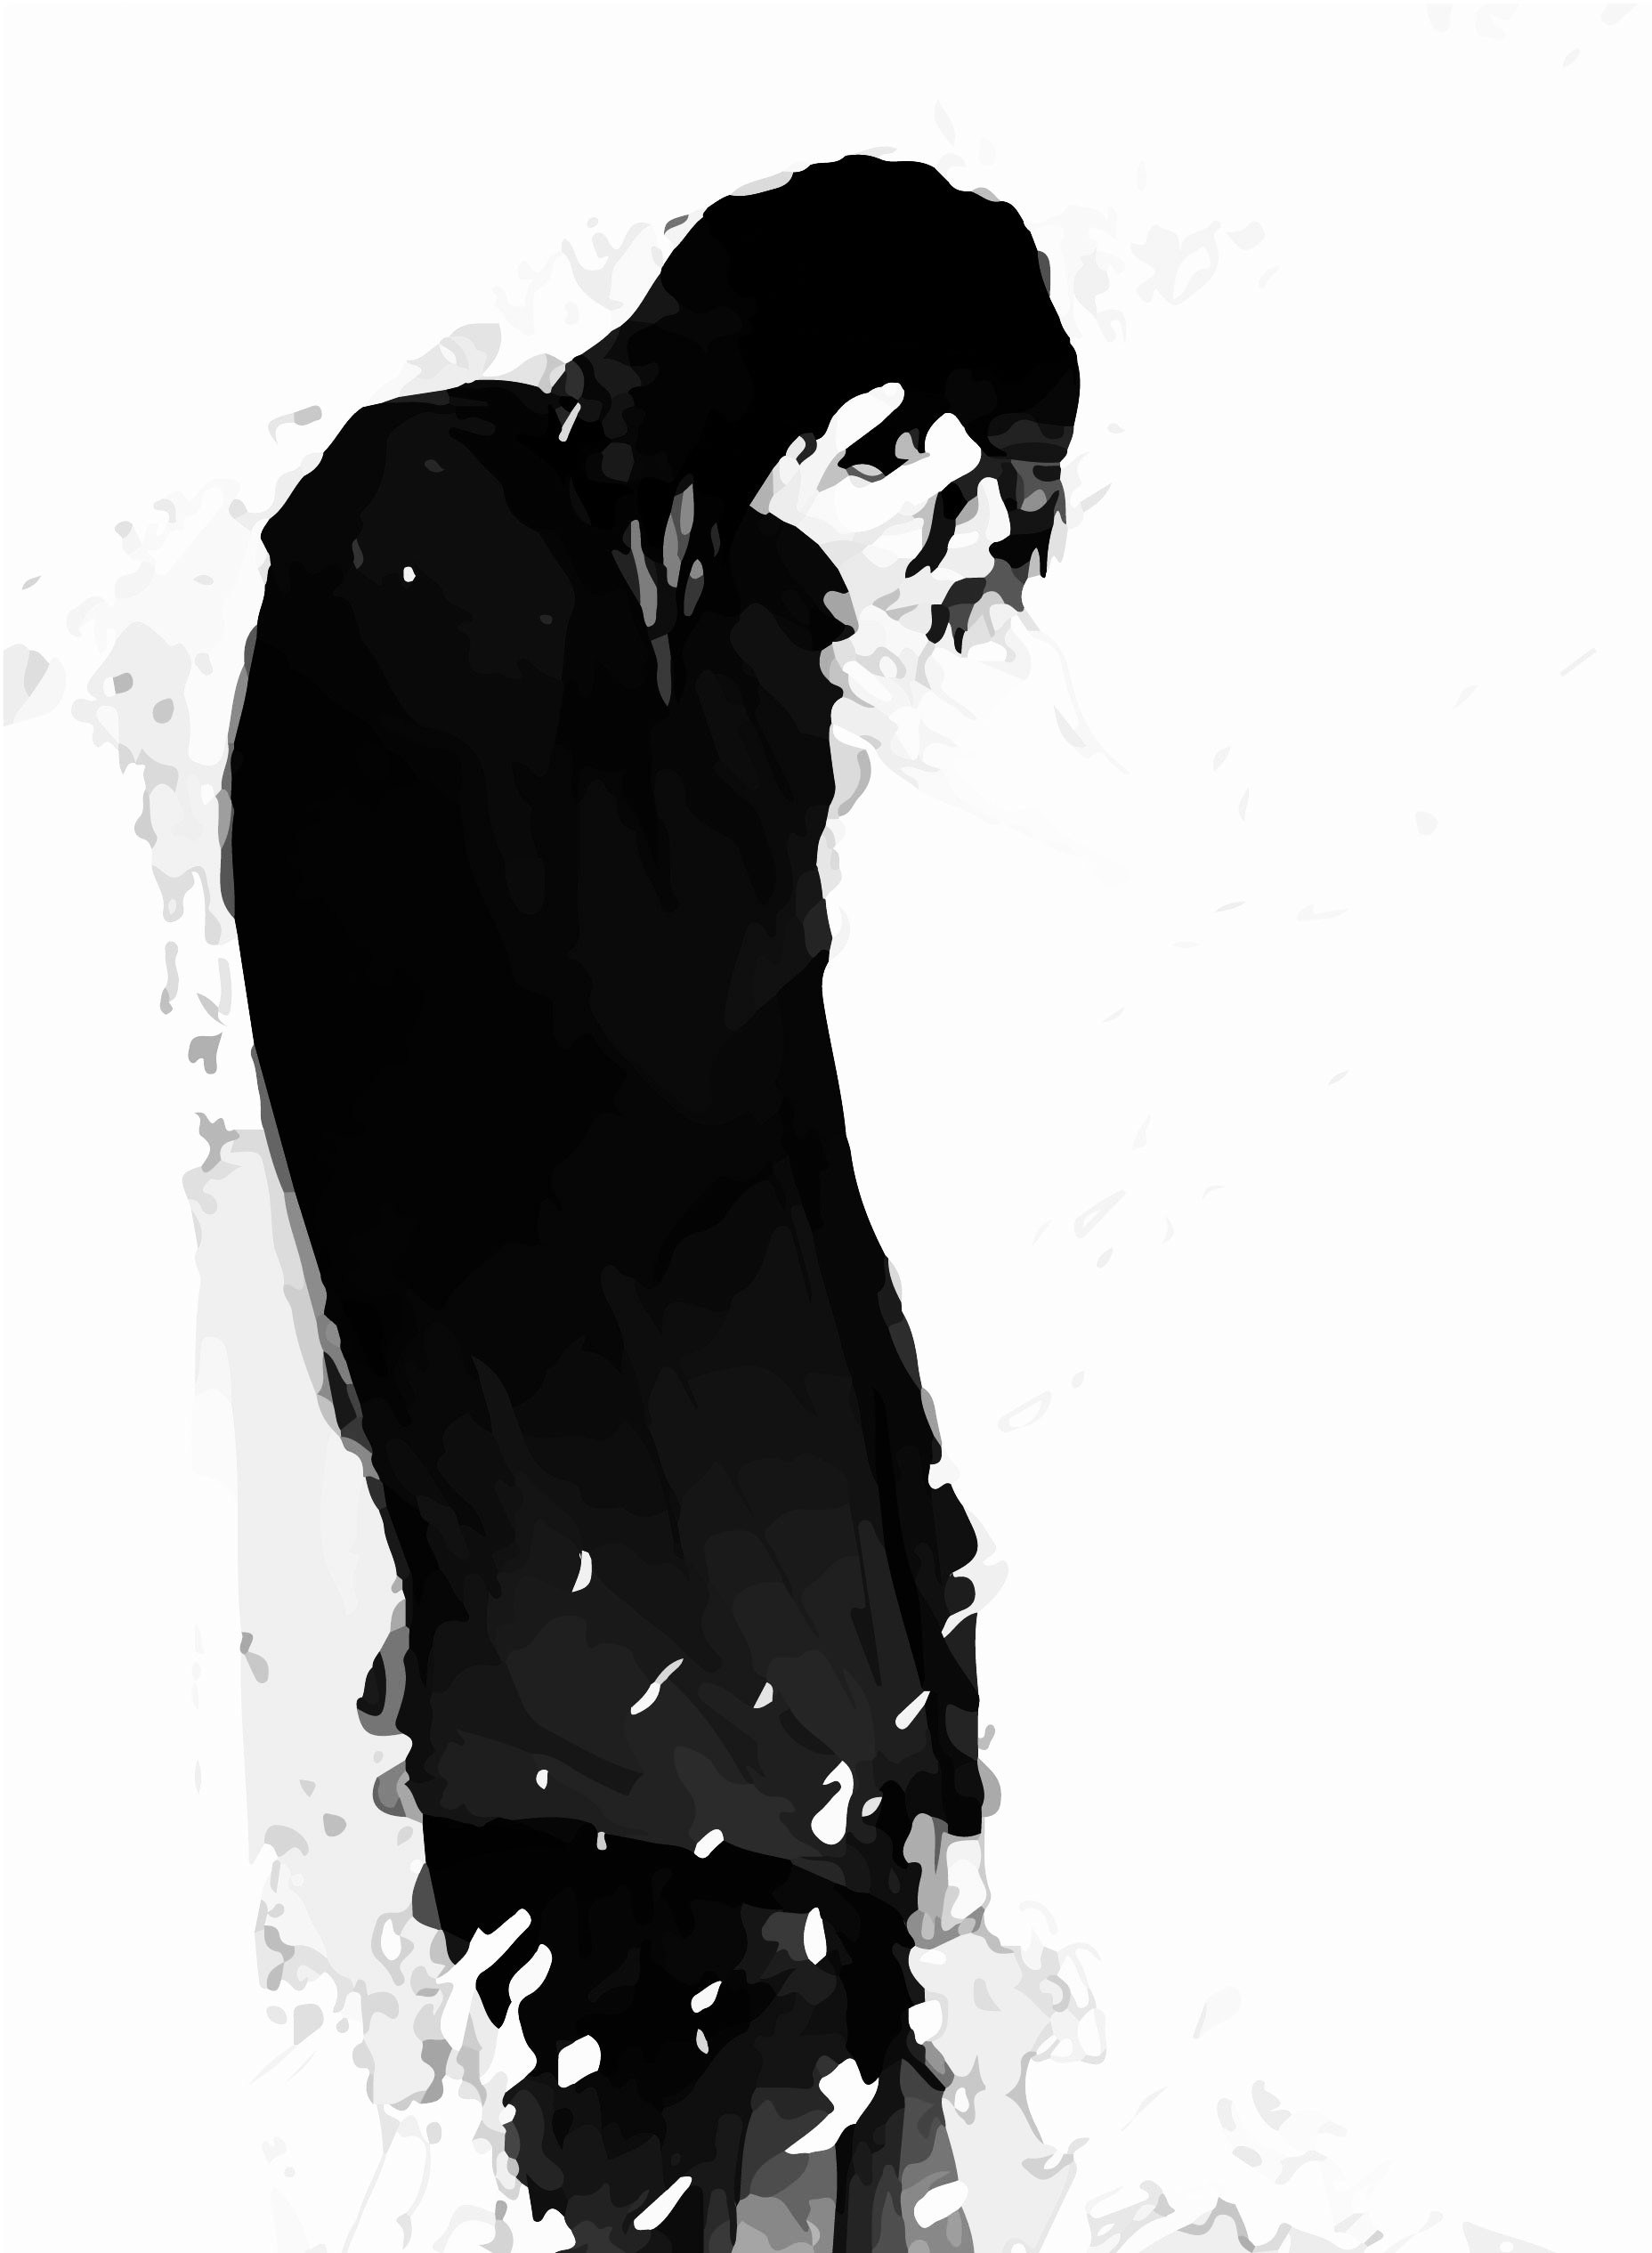 Sad Anime Boy Wallpaper ① Tall Anime Boy Black Hair